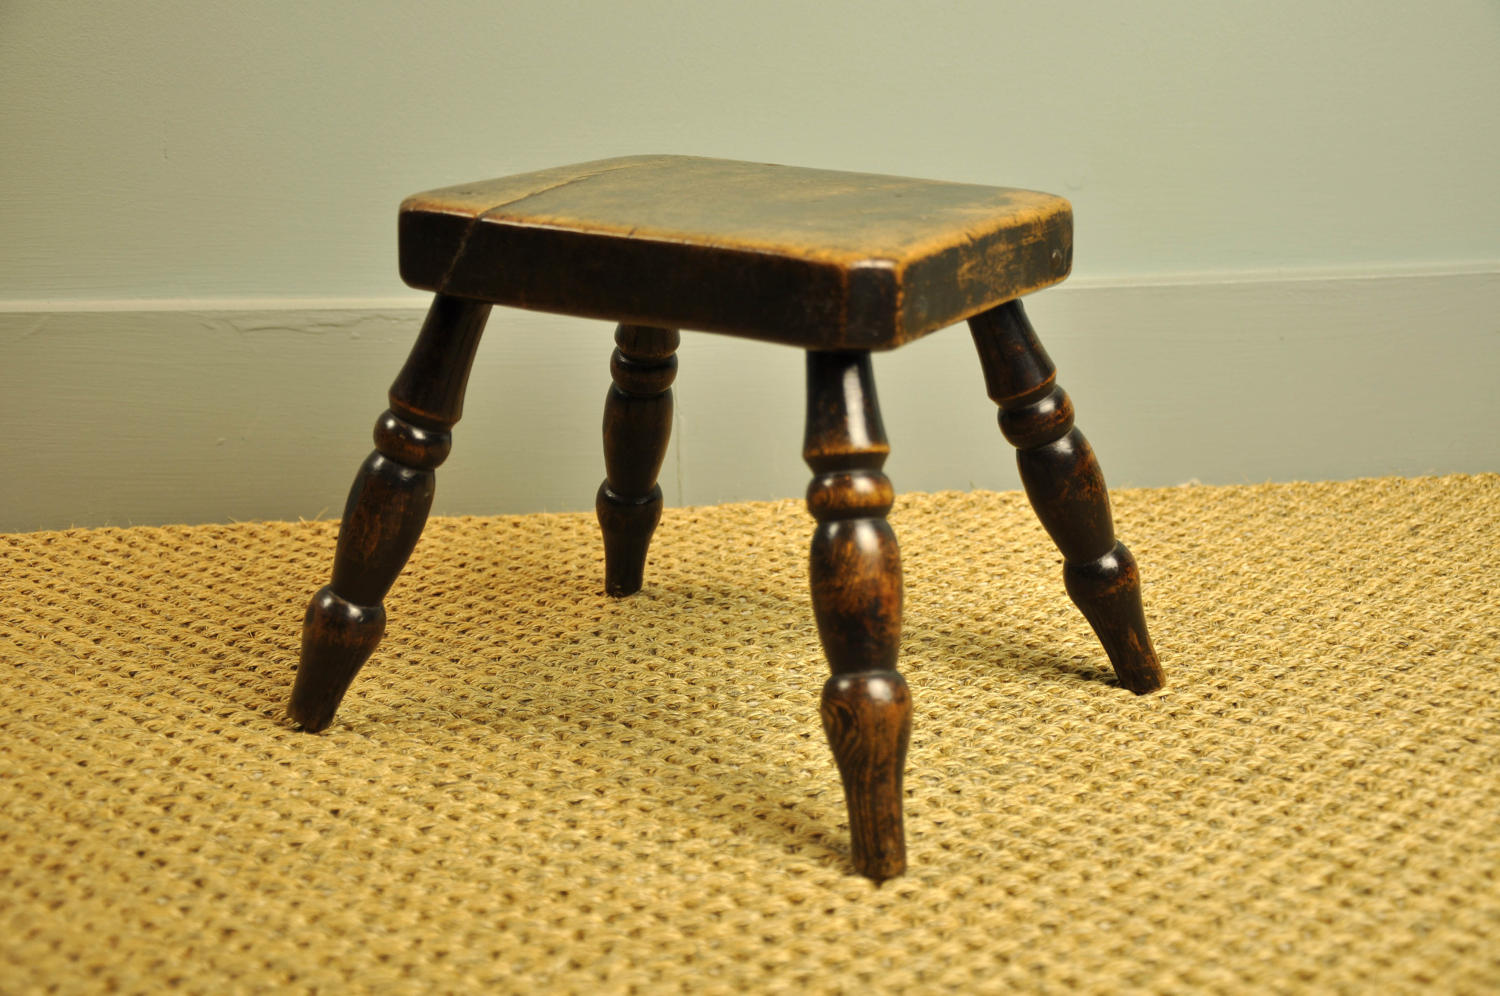 19th century country stool